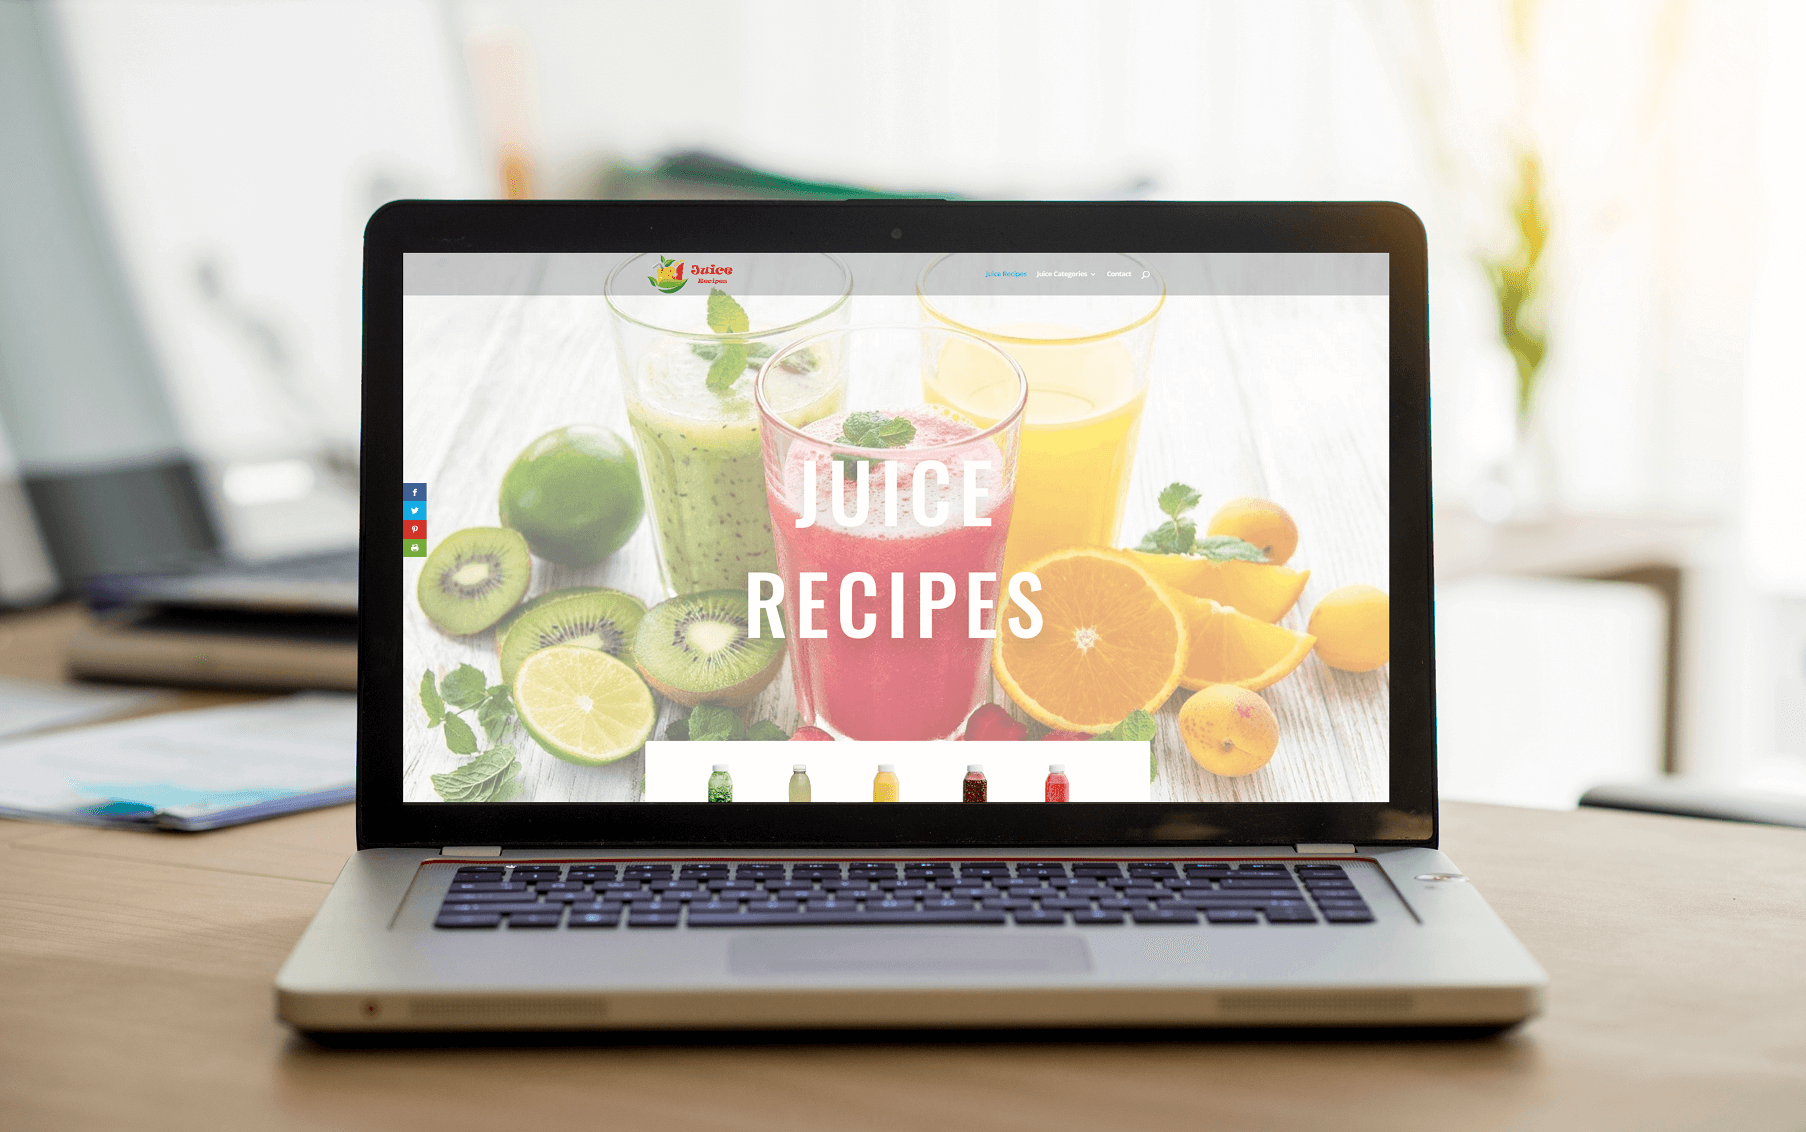 Juicerecipes.org on Laptop showing different Juices and Juice Categories